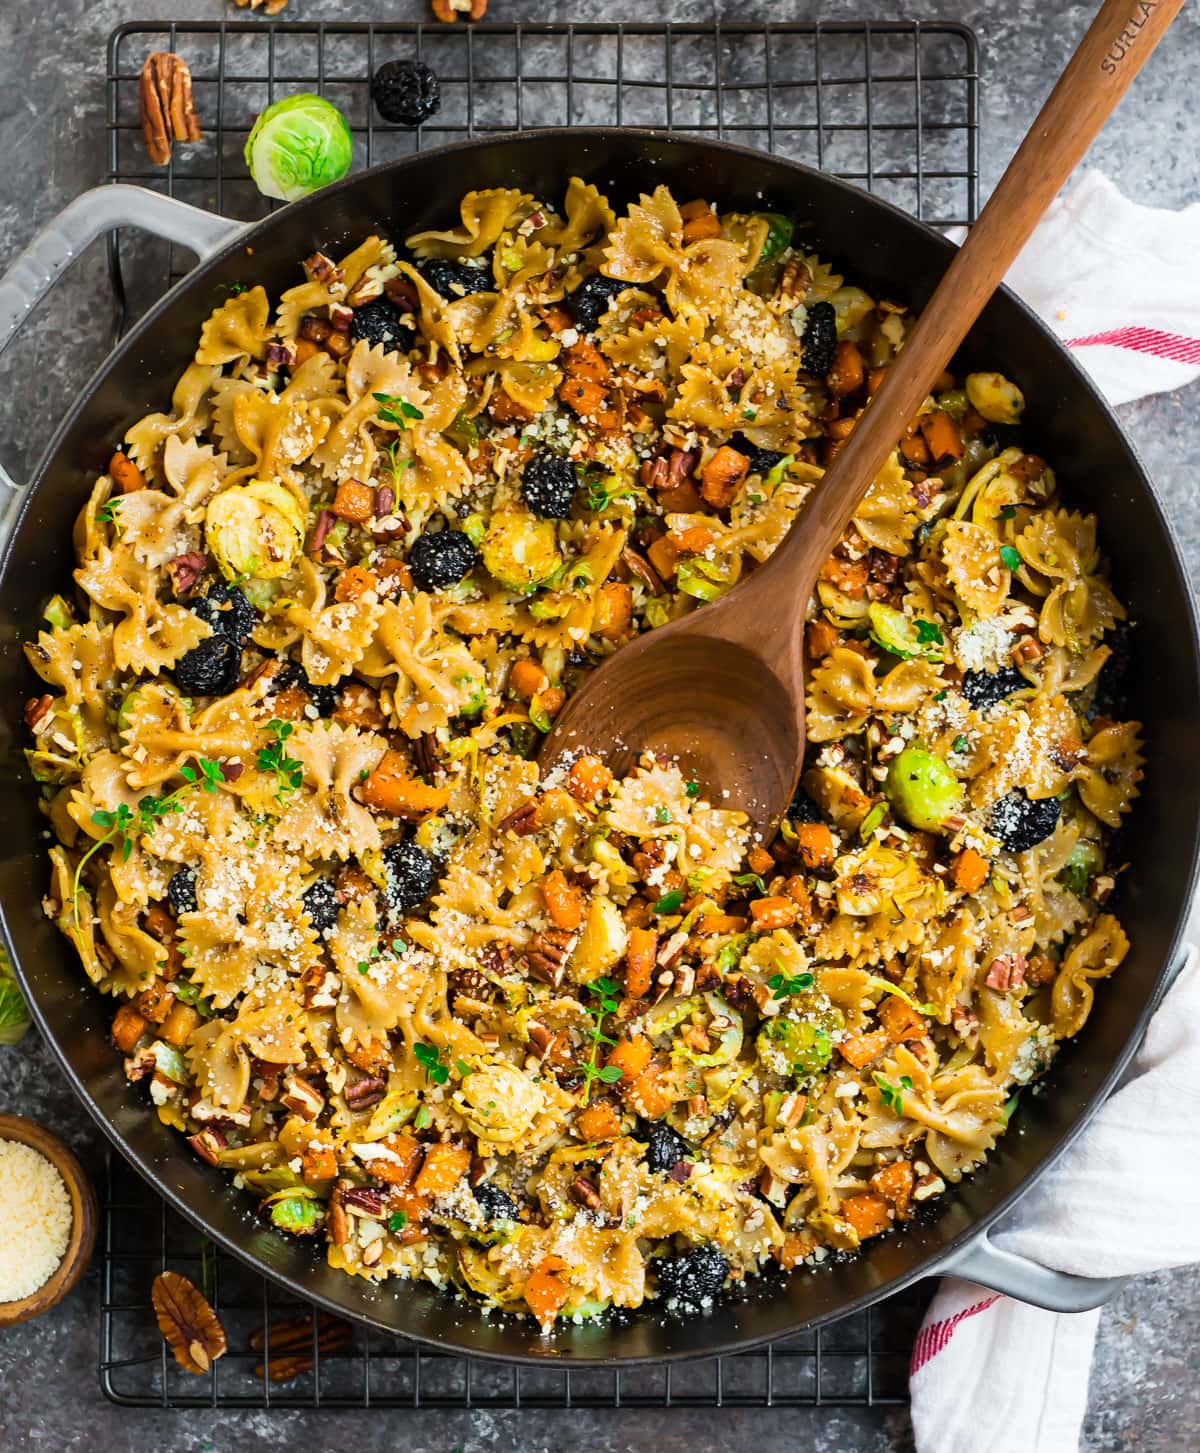 Pasta with vegetables in a skillet